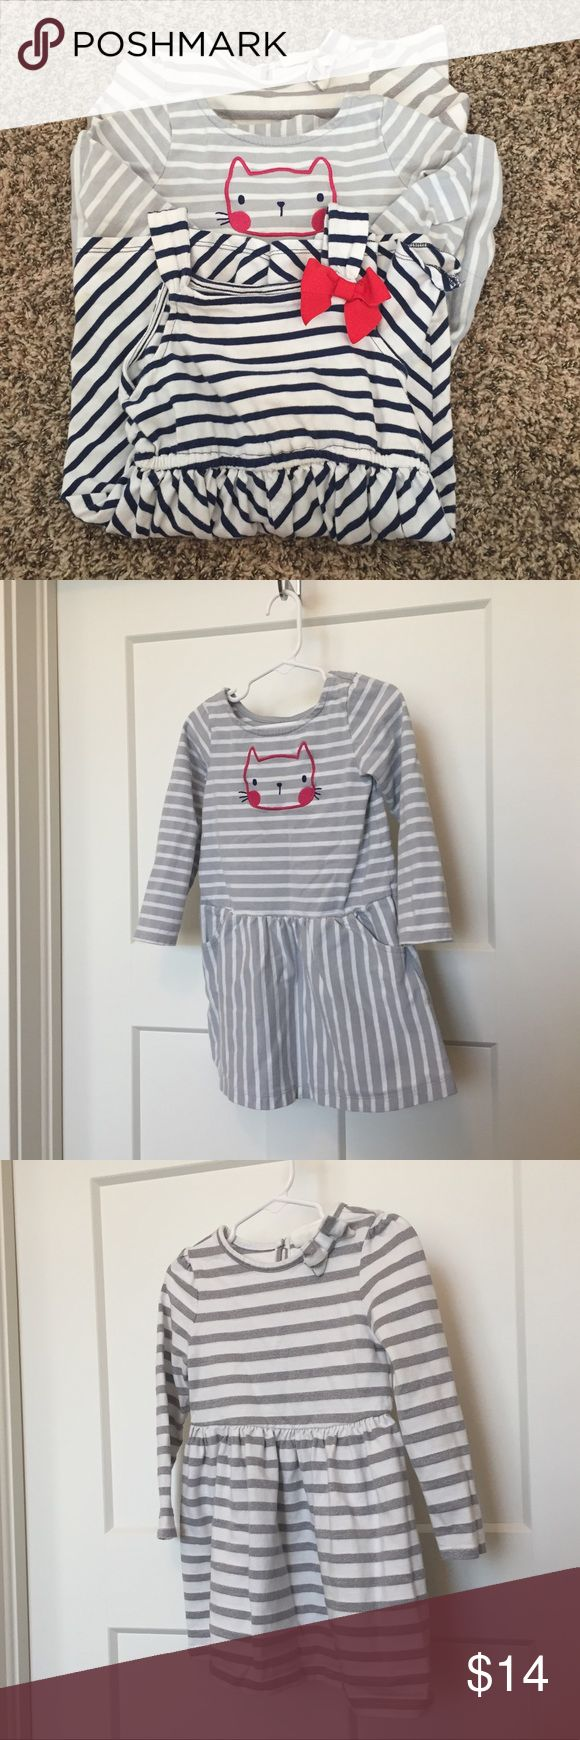 Lot of 2 Gymboree & one Crazy 8 size 3T dresses Red white and blue chevron dress & grey and pink kitten dress by Gymboree. White and silver sparkle dress by Crazy 8. All in gently used condition and from and smoke and pet free home. Gymboree Dresses